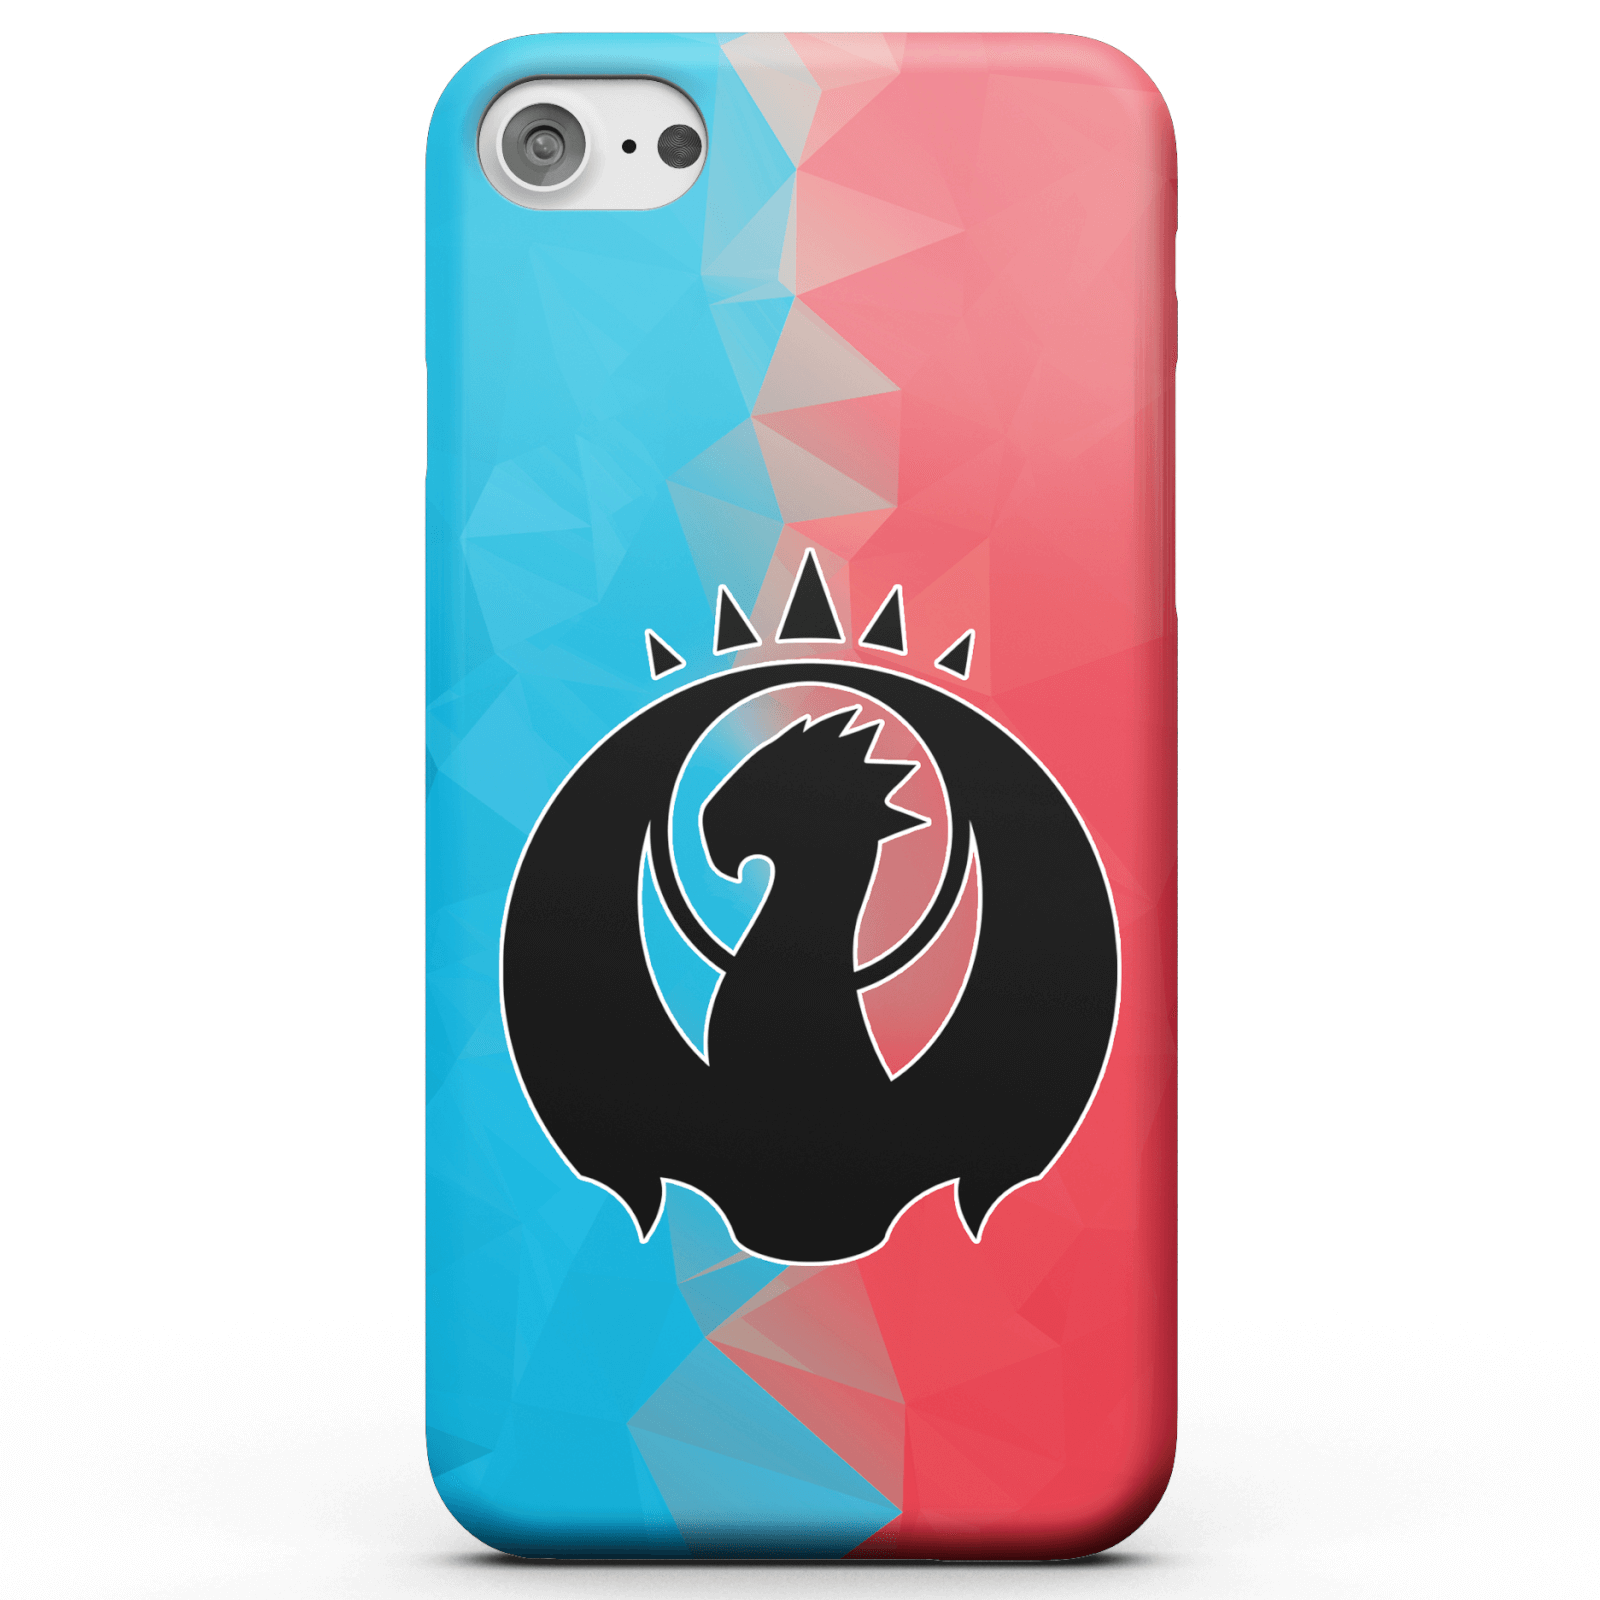 Funda Móvil Magic The Gathering Izzet Fractal para iPhone y Android - Samsung S6 Edge - Carcasa rígida - Brillante de Magic The Gathering